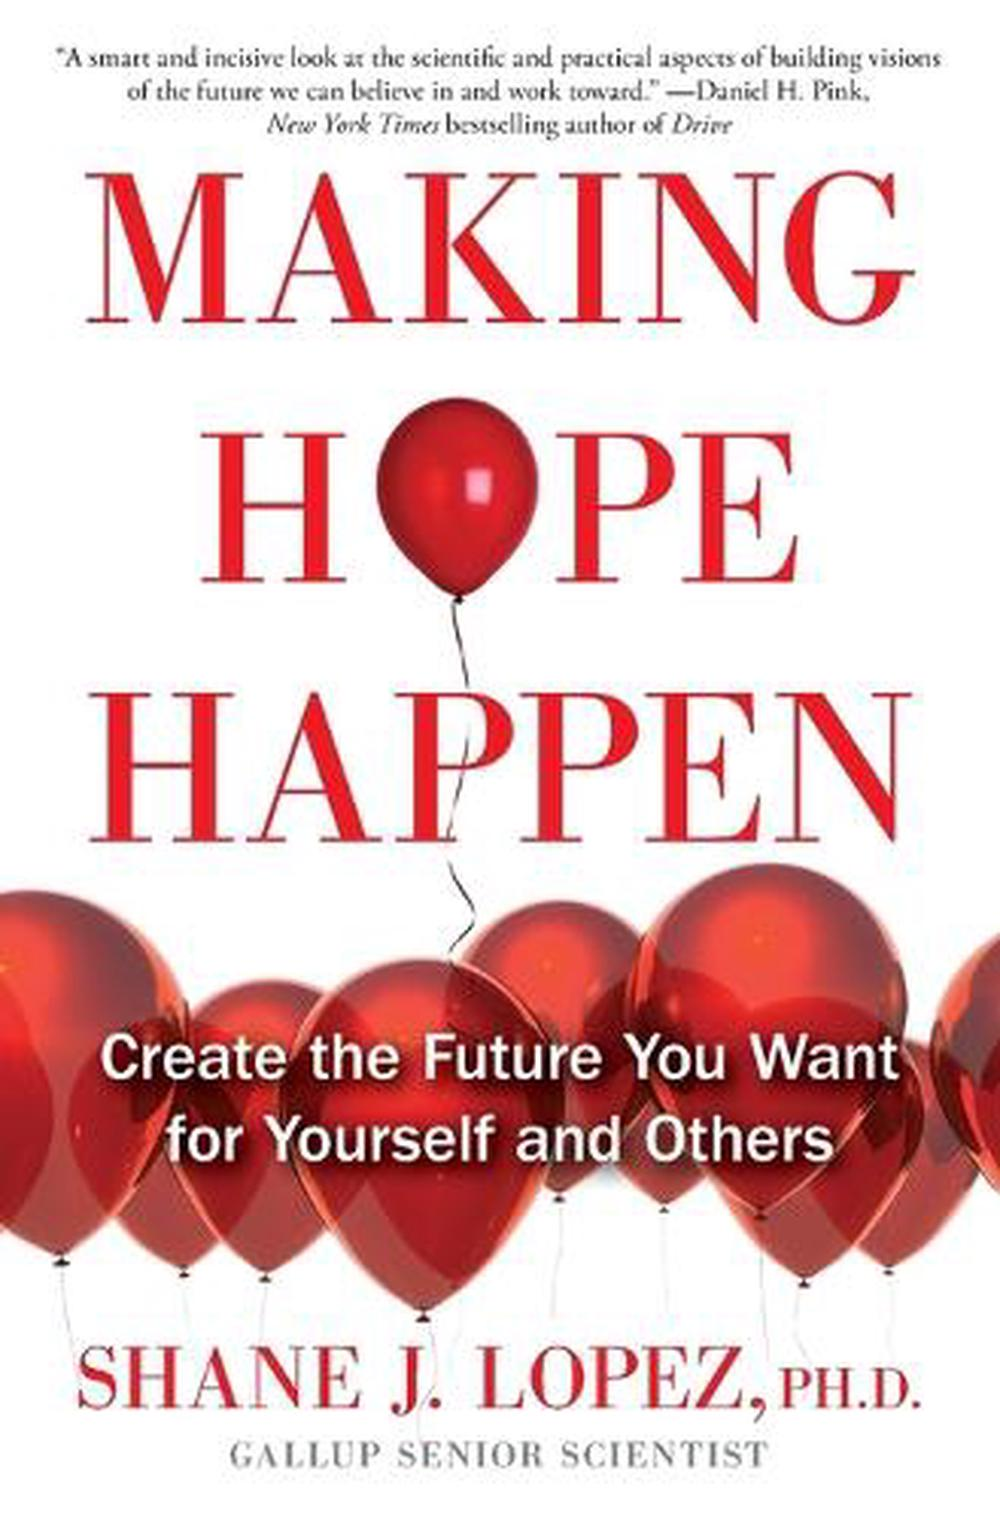 Making Hope Happen: Create the Future You Want for Yourself and Others